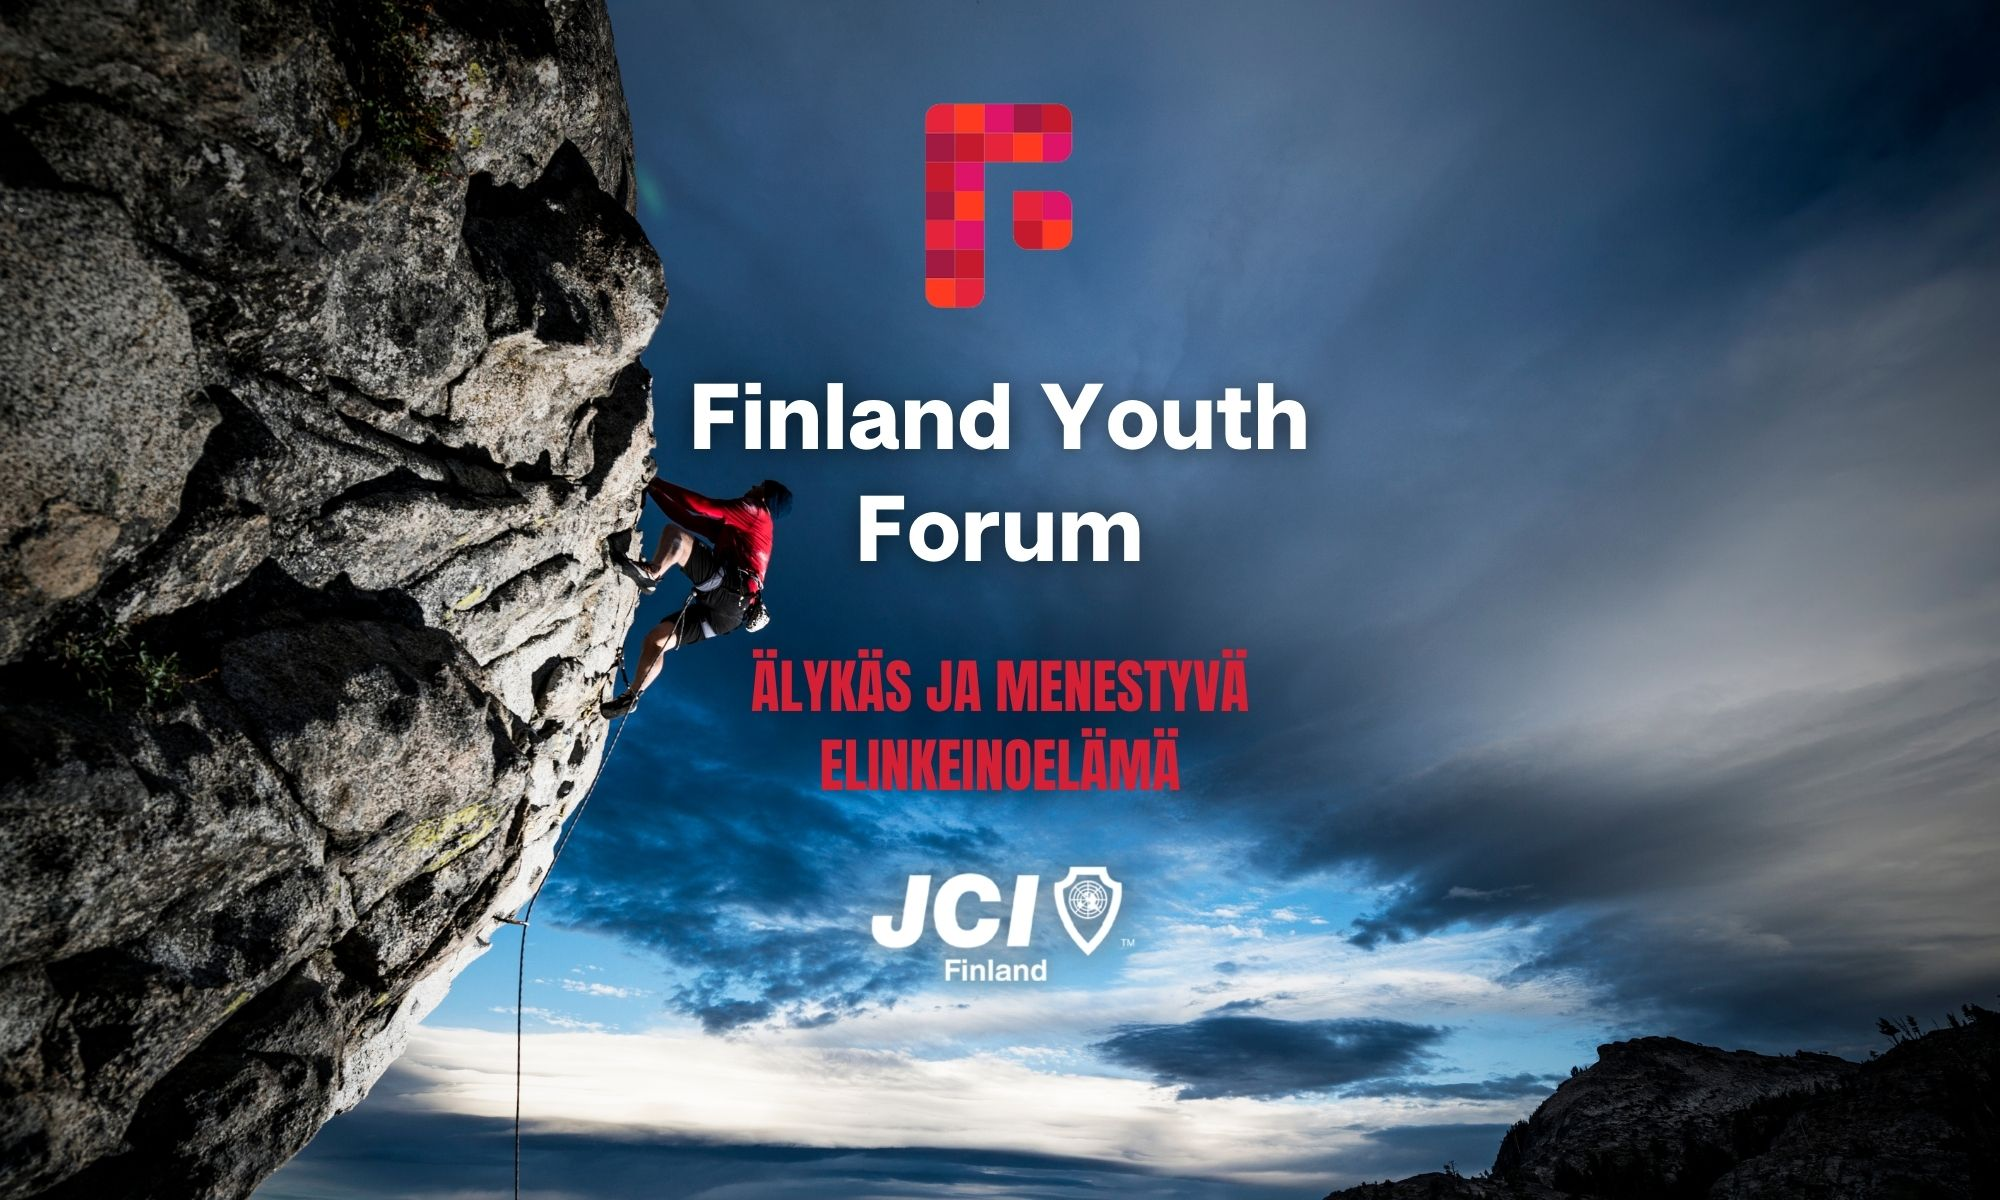 Finland Youth Forum